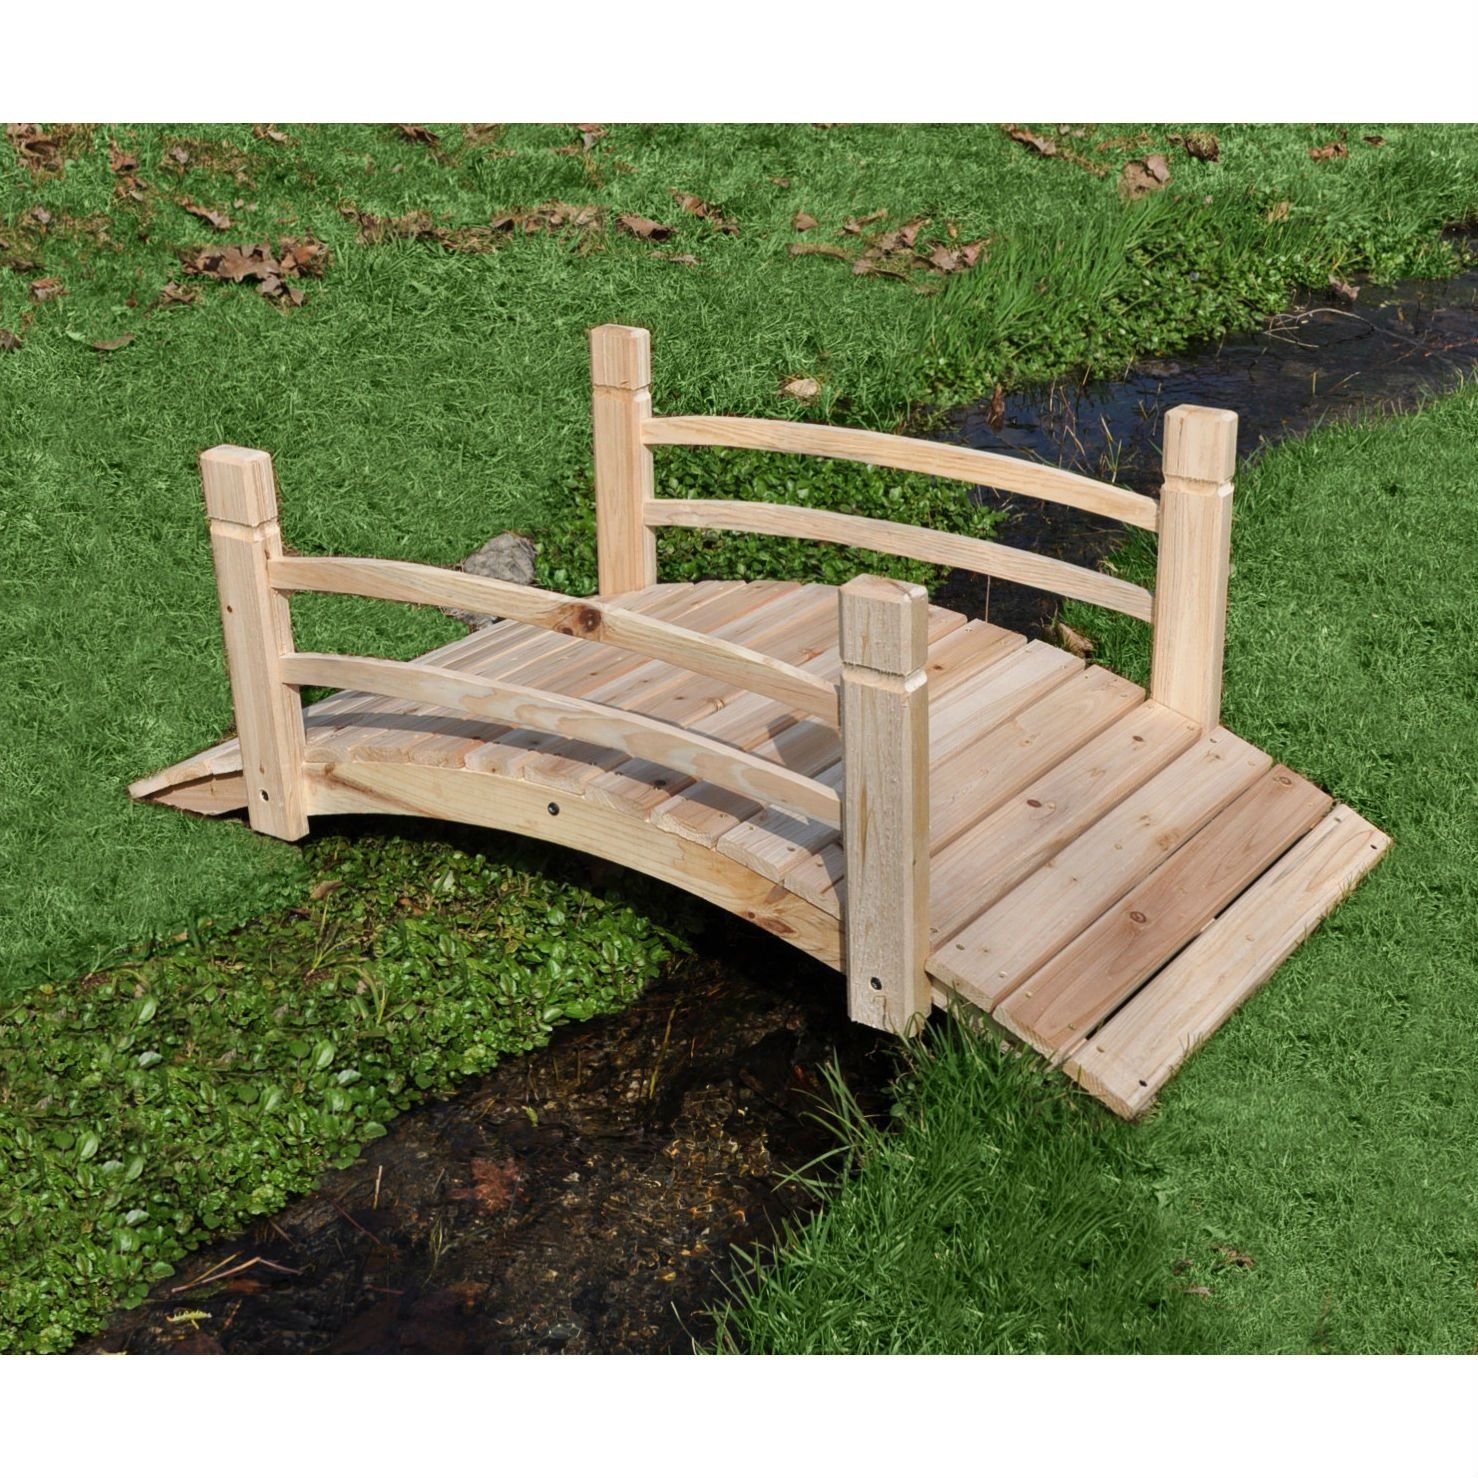 7 Affordable Landscaping Ideas For Under 1 000: 4-Ft Garden Bridge With Rails In Cedar Wood